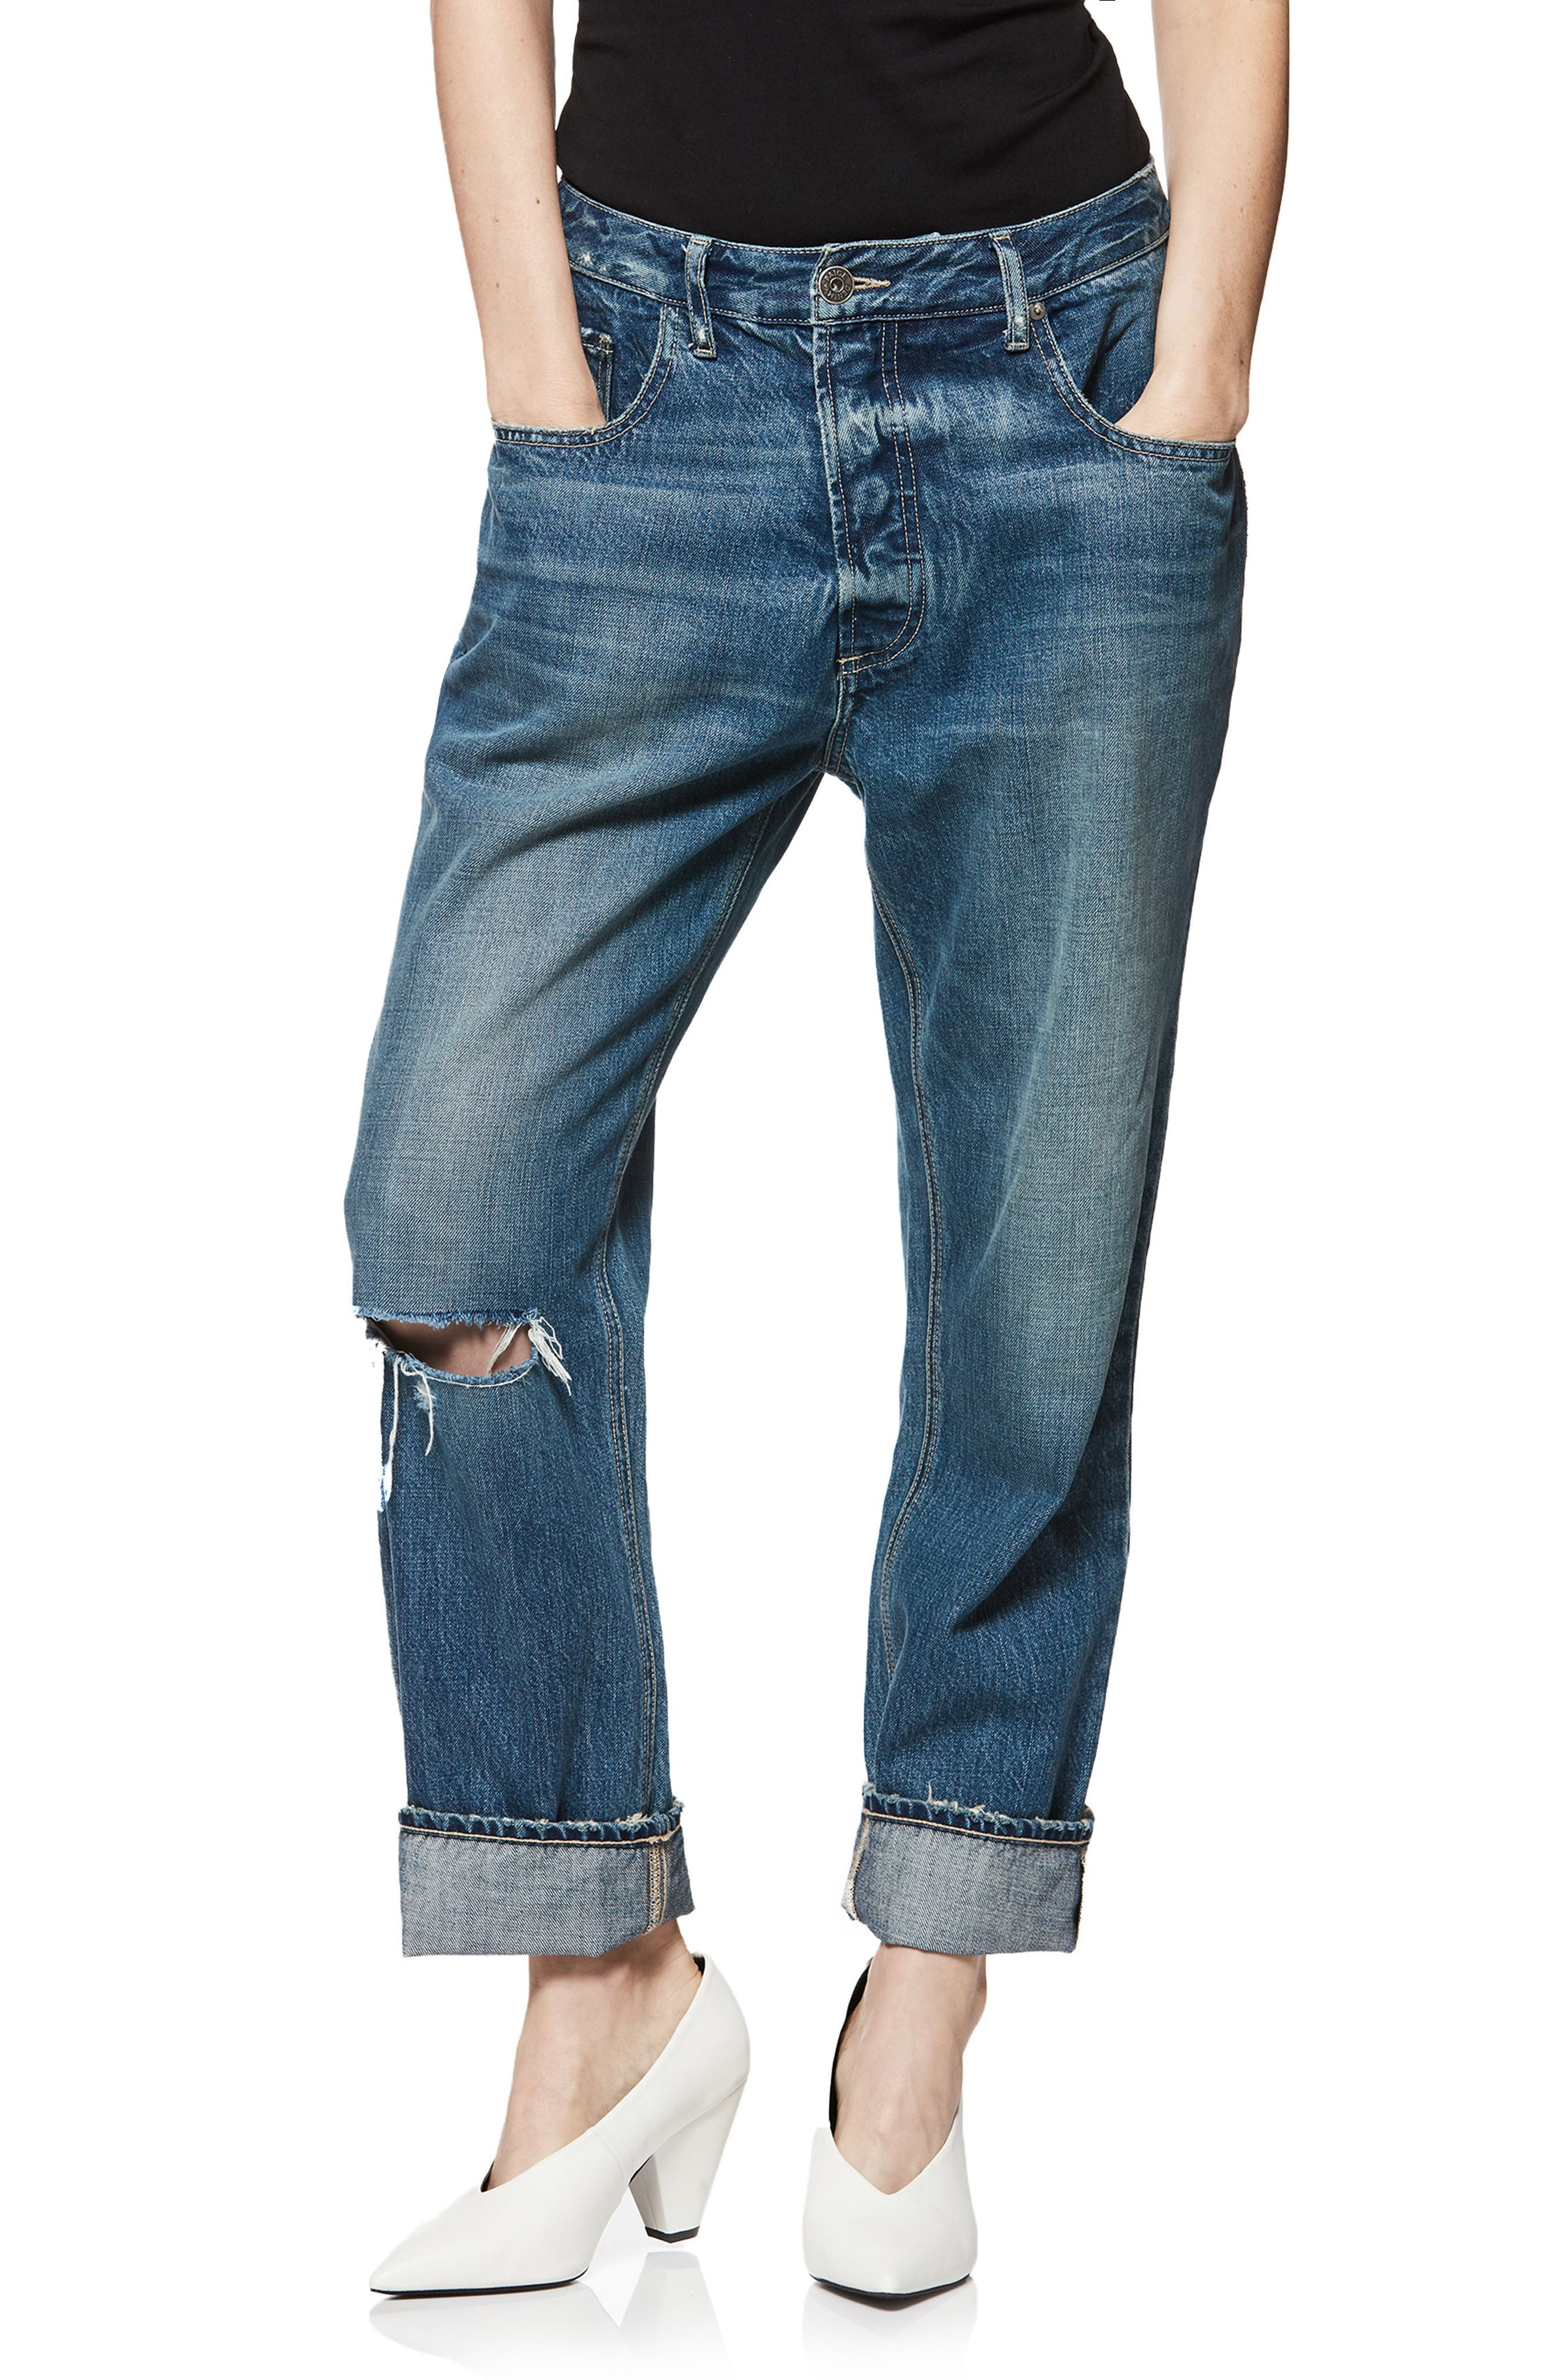 Mikey Mike Ripped Boyfriend Jeans,                         Main,                         color, Covina